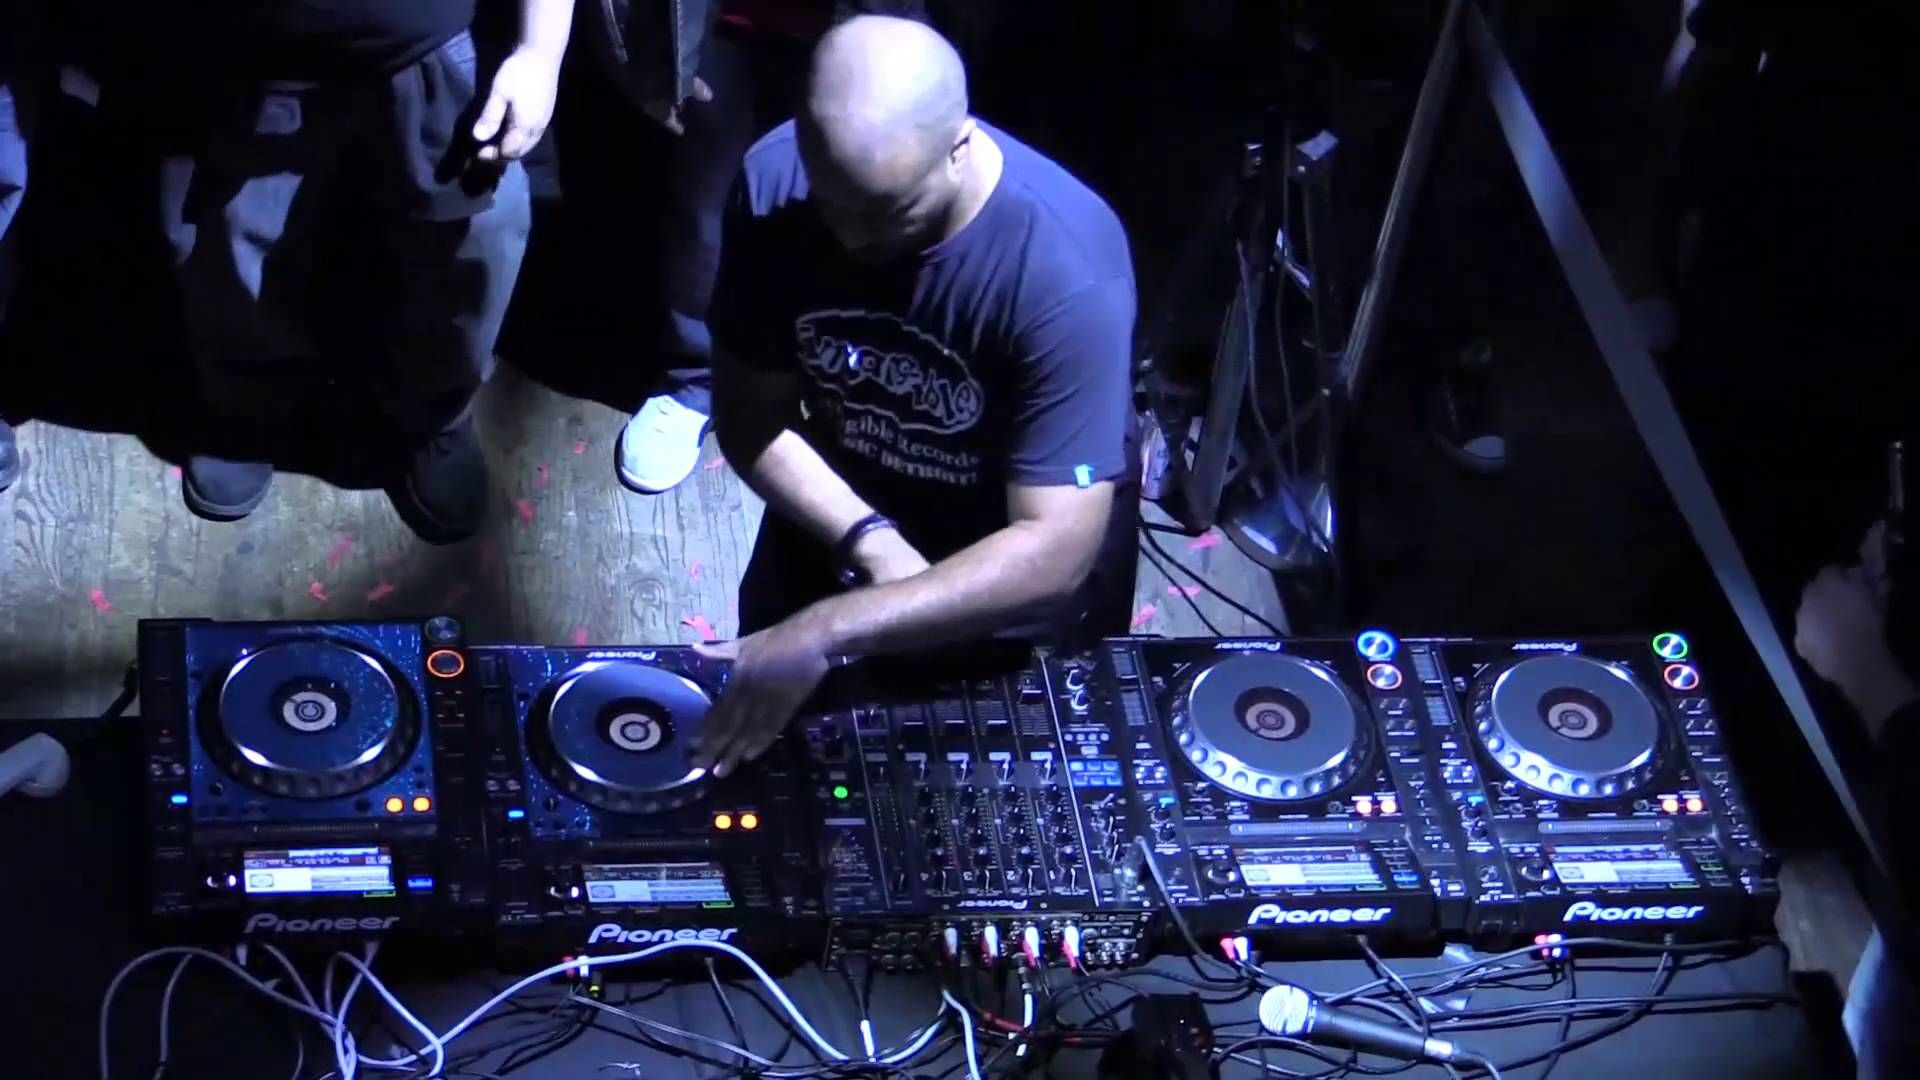 Terrence Parker Boiler Room Chicago DJ Set | Tunes doing it today ...